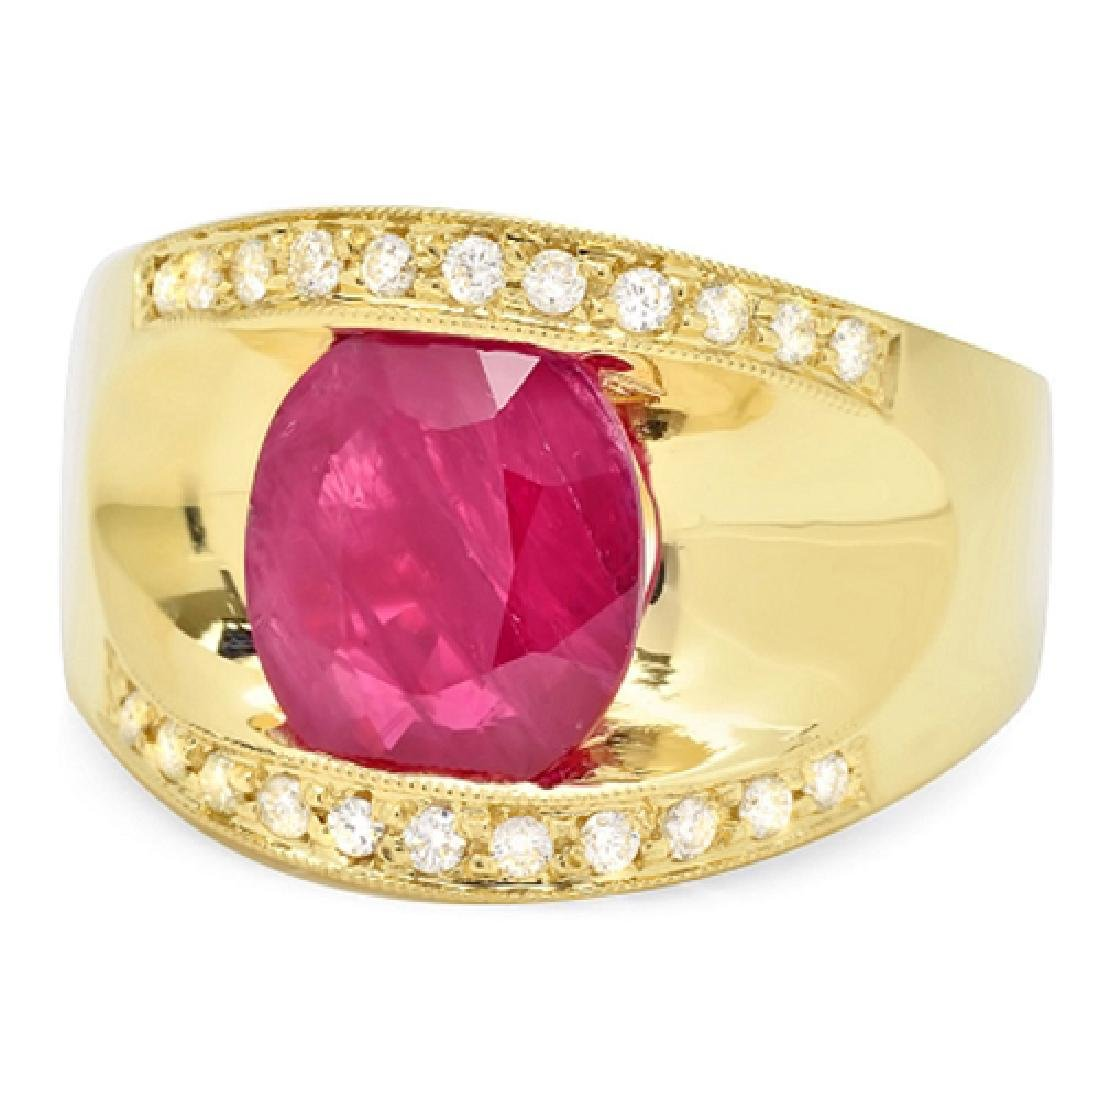 2.87 Carat Natural Ruby 18K Solid Yellow Gold Diamond - 2